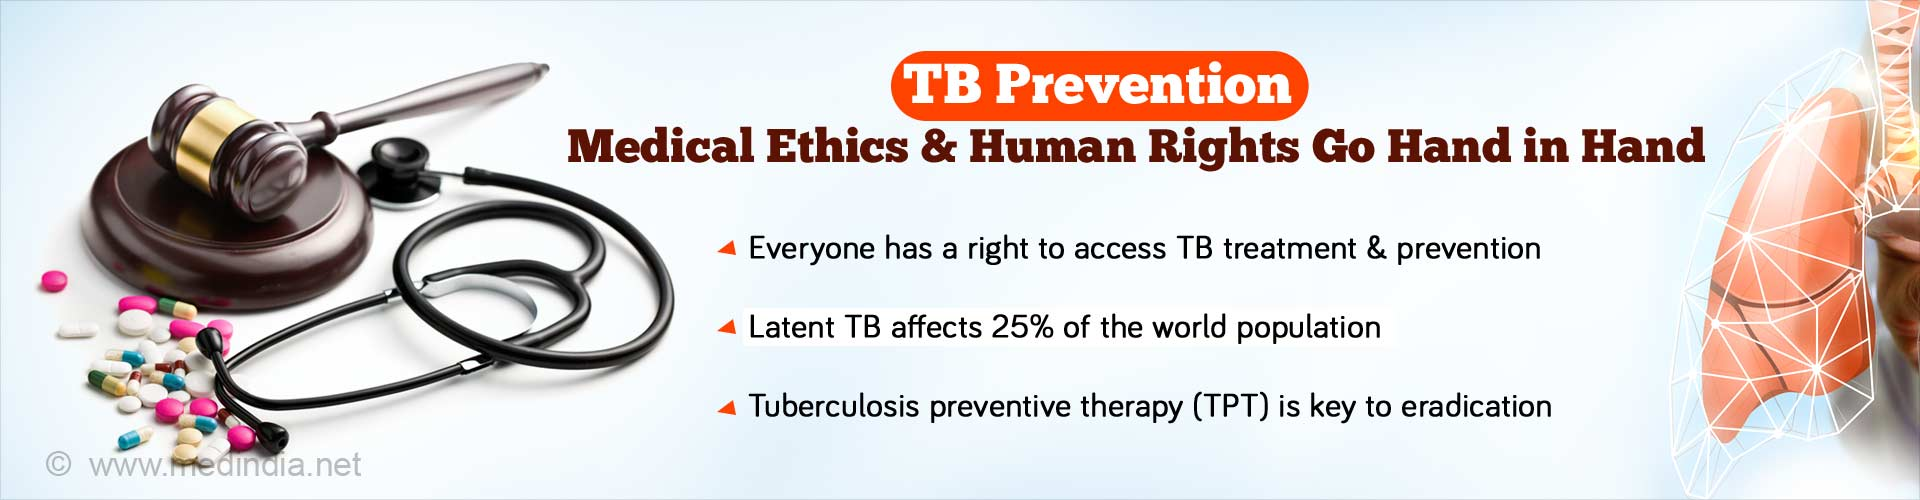 Medical Ethics and Human Rights Together can Eliminate TB by 2030